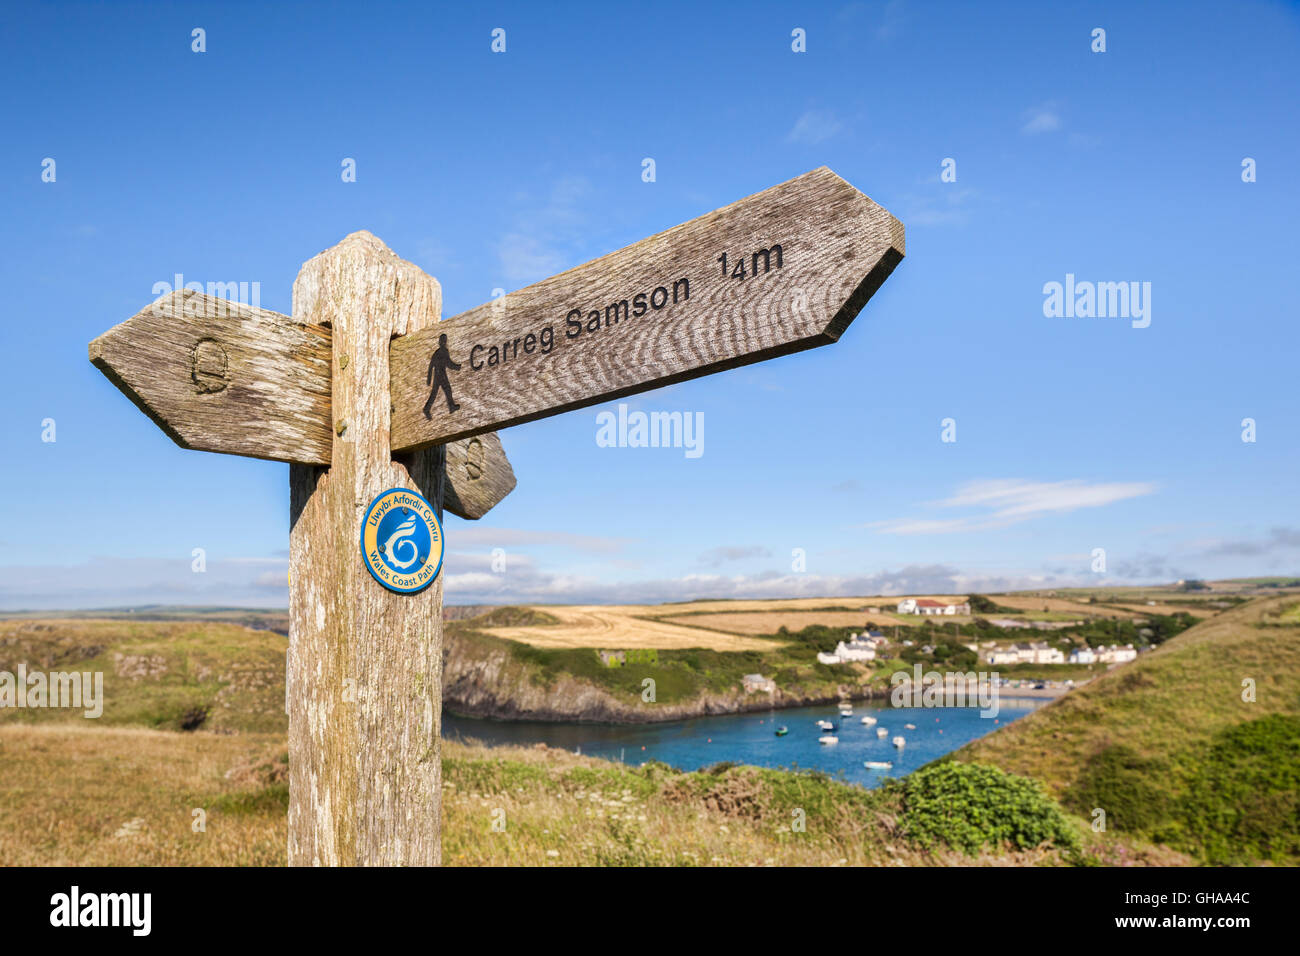 Signpost showing a footpath to Carreg Samson, a Neolithic dolmen grave on the Pembrokeshire coast of Wales, with - Stock Image